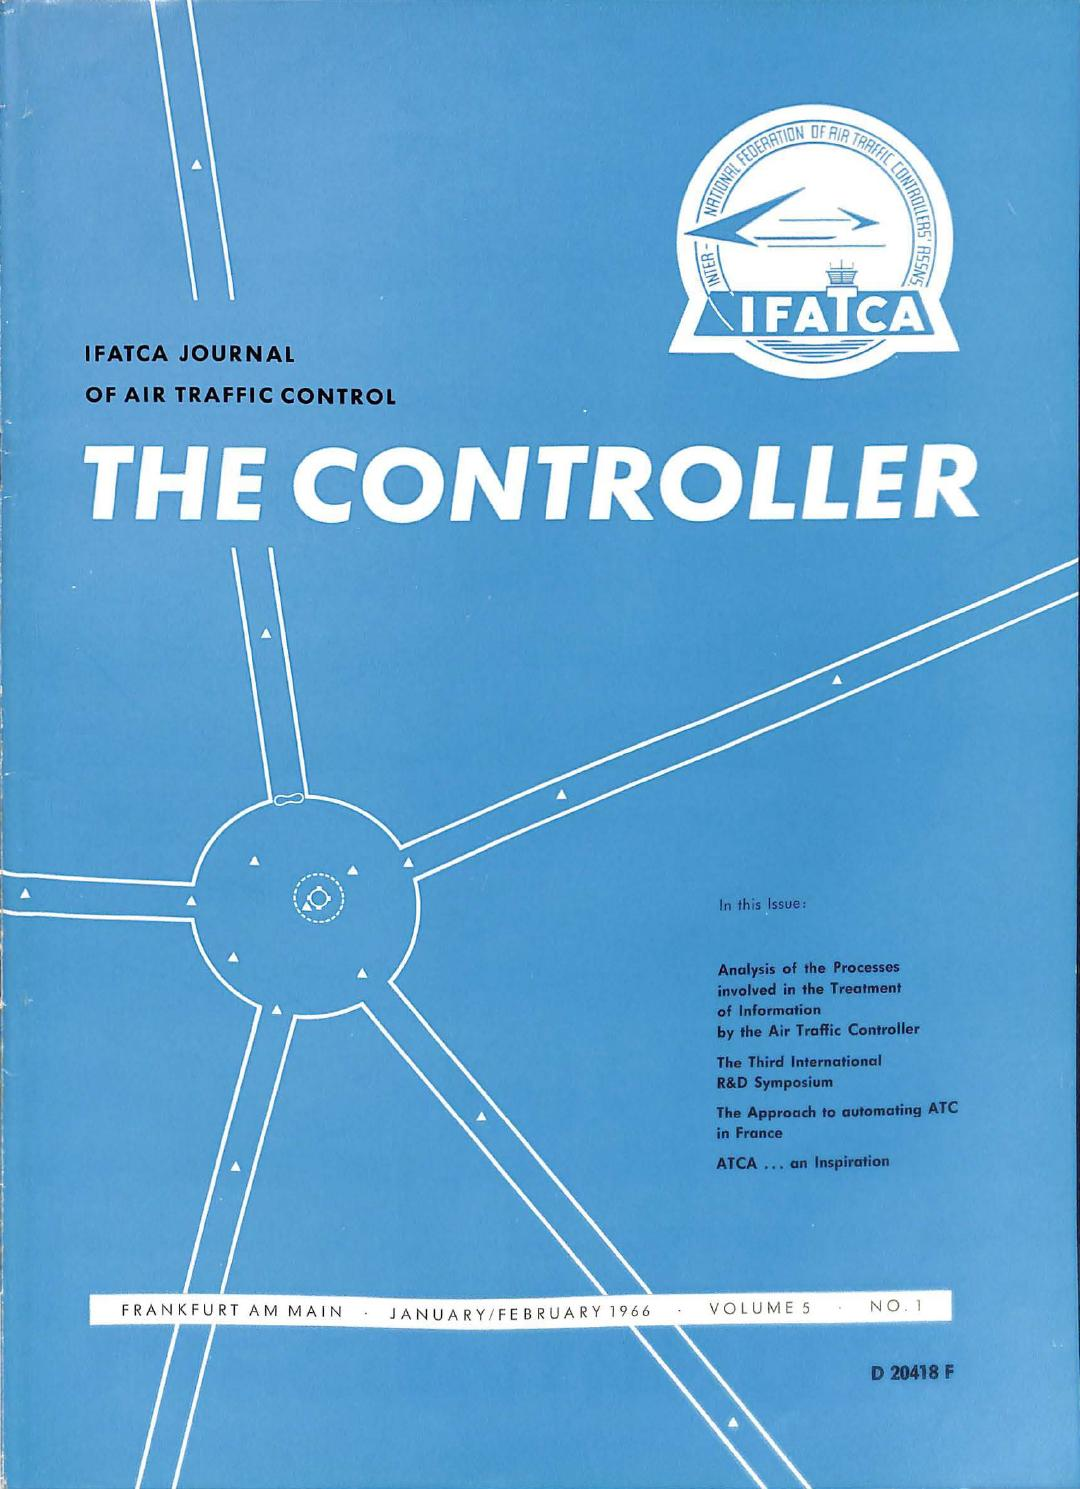 IFATCA The Controller - January 1966 by IFATCA - issuu